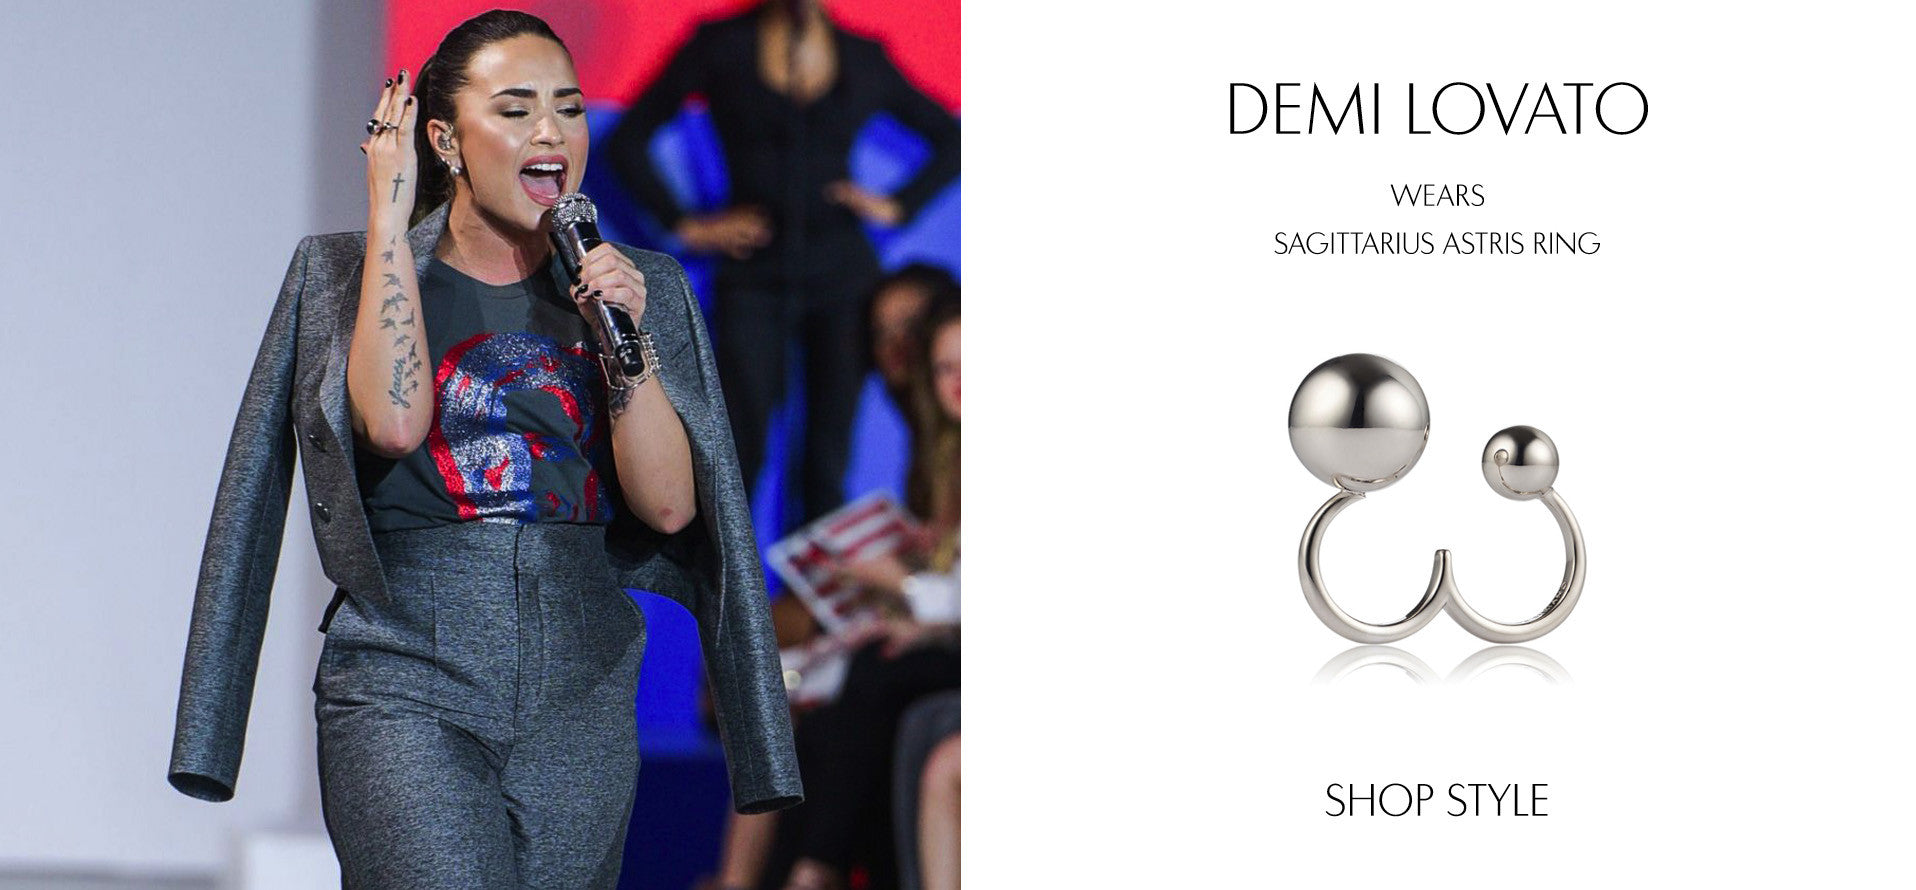 DEMI LOVATO at Hillary Clinton's Fashion Show Fundraiser in New York September 2016 wearing Sarina Suriano Sagittarius Astris ring